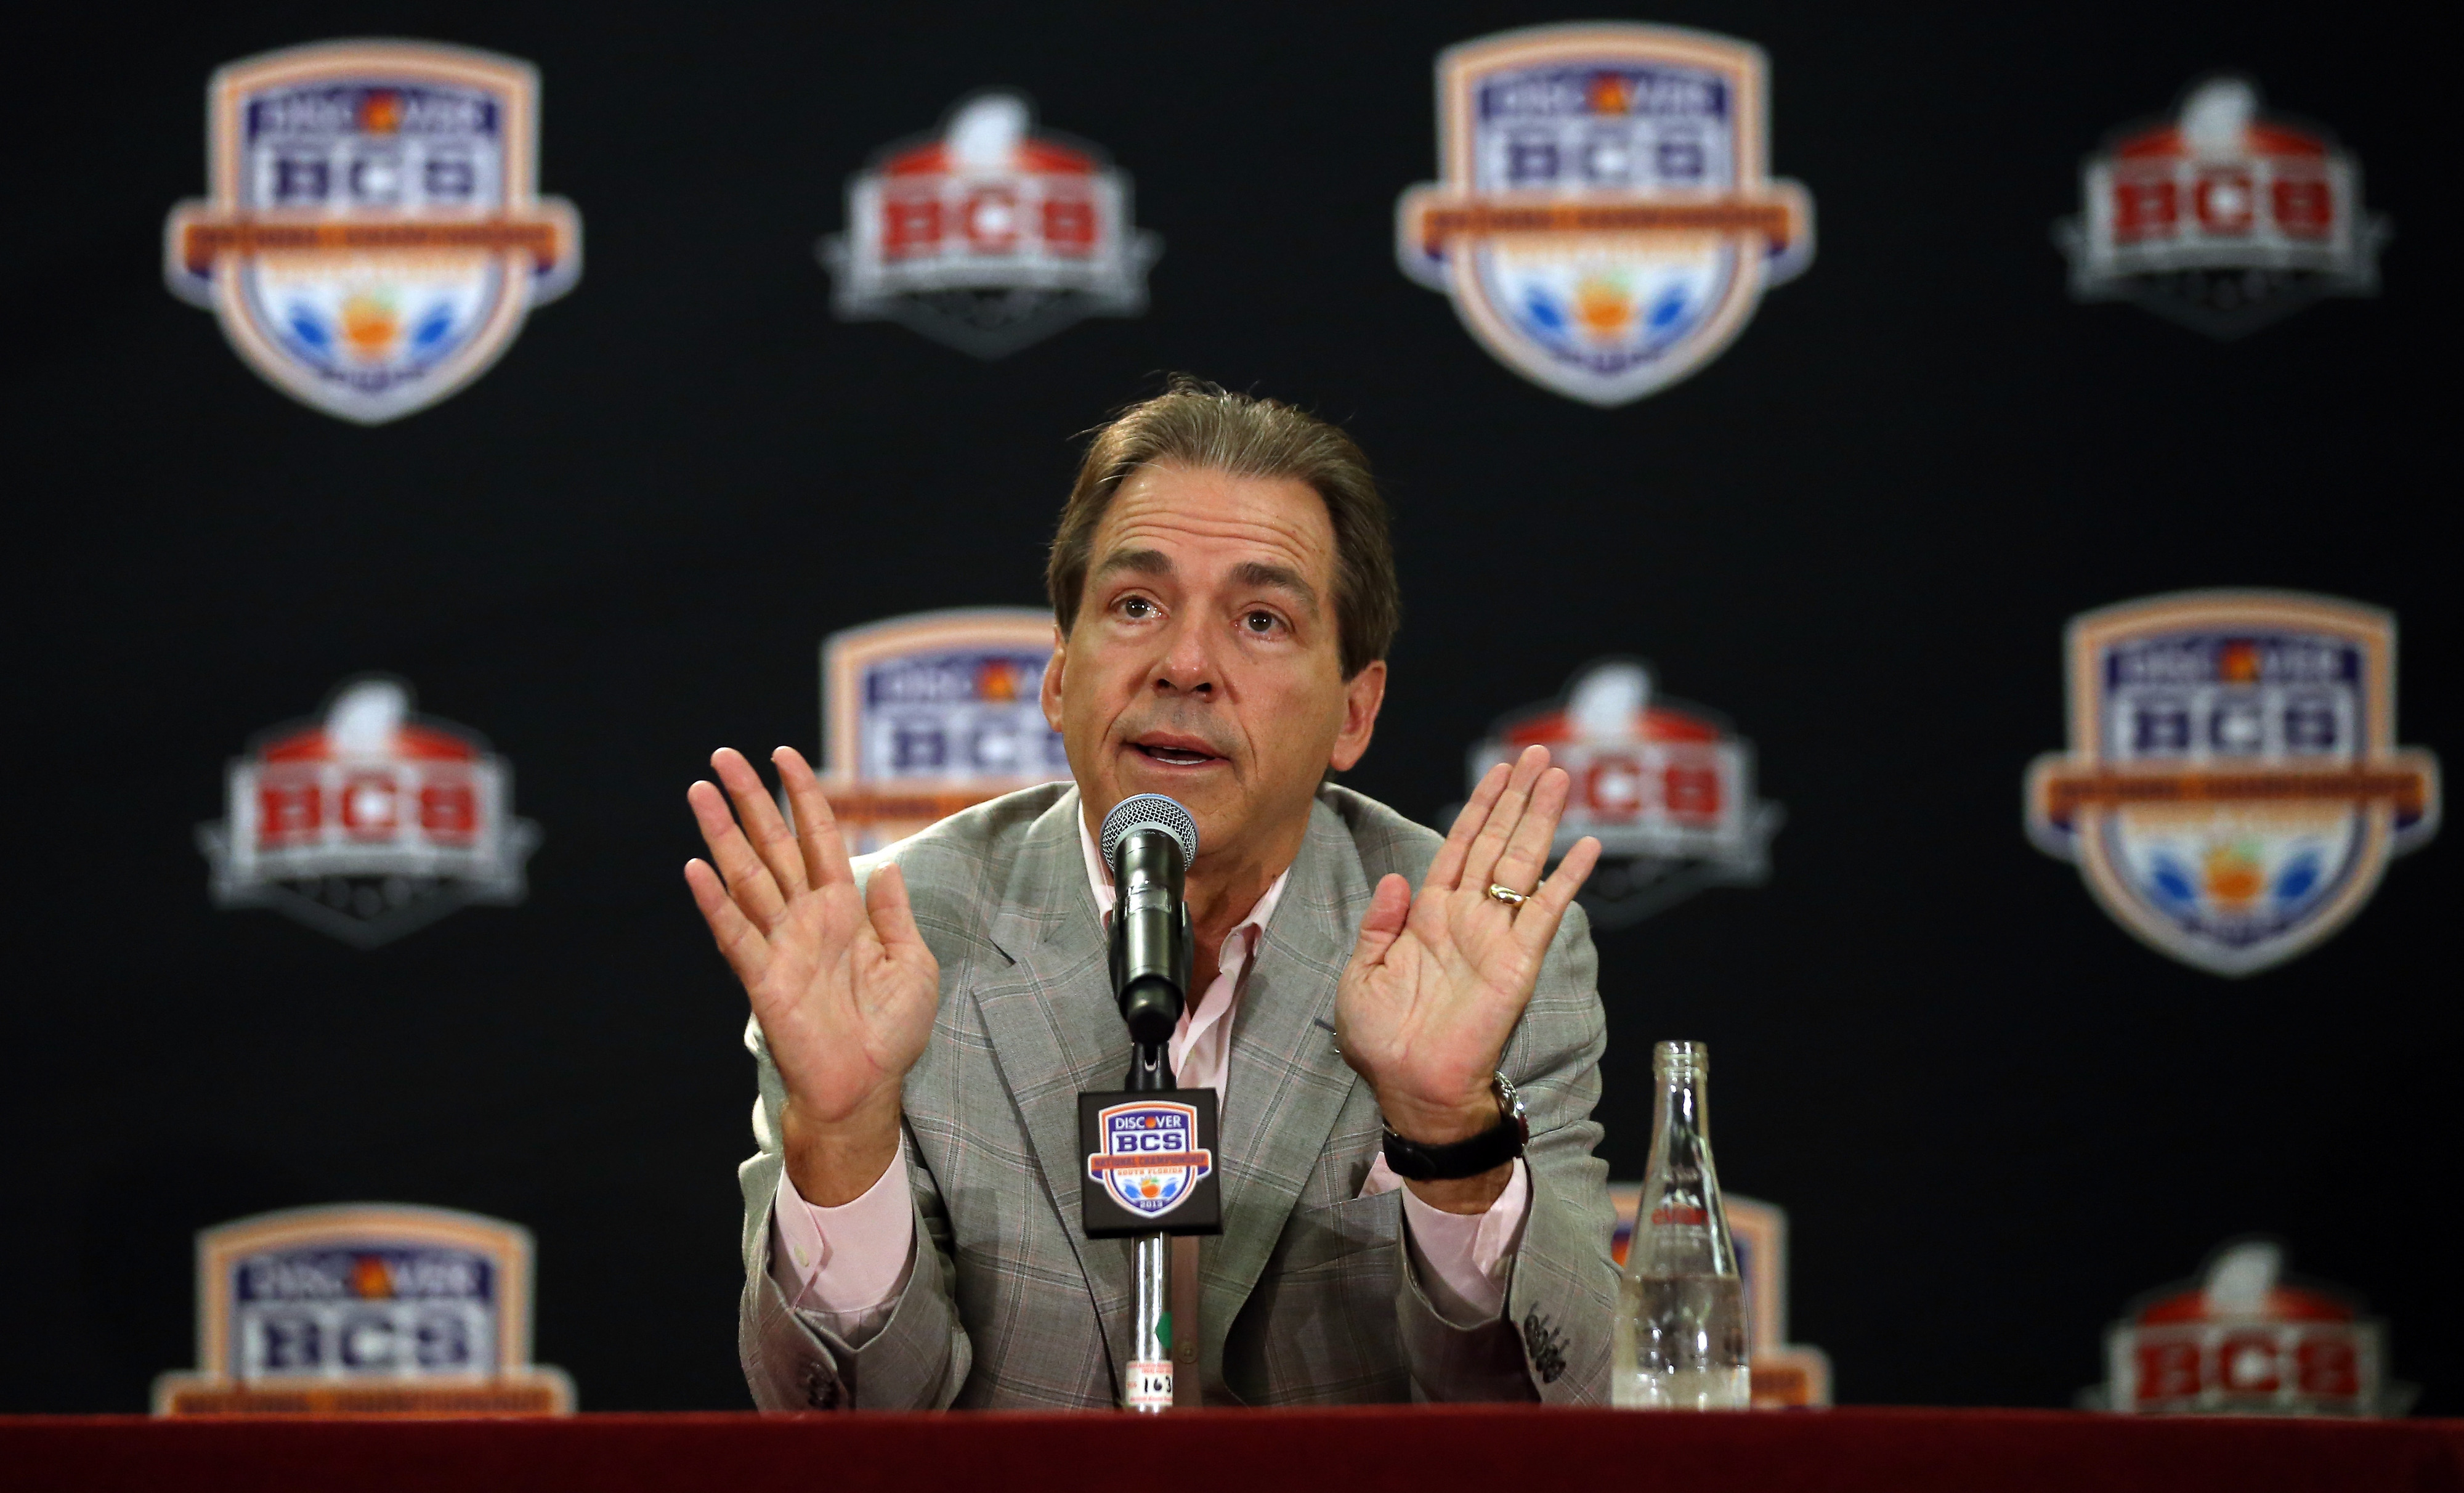 """I have decided to leave the University of Alabama, and accept a lead role in the Broadway revival of """"Annie Get Your Gun"""". Roll Tide."""